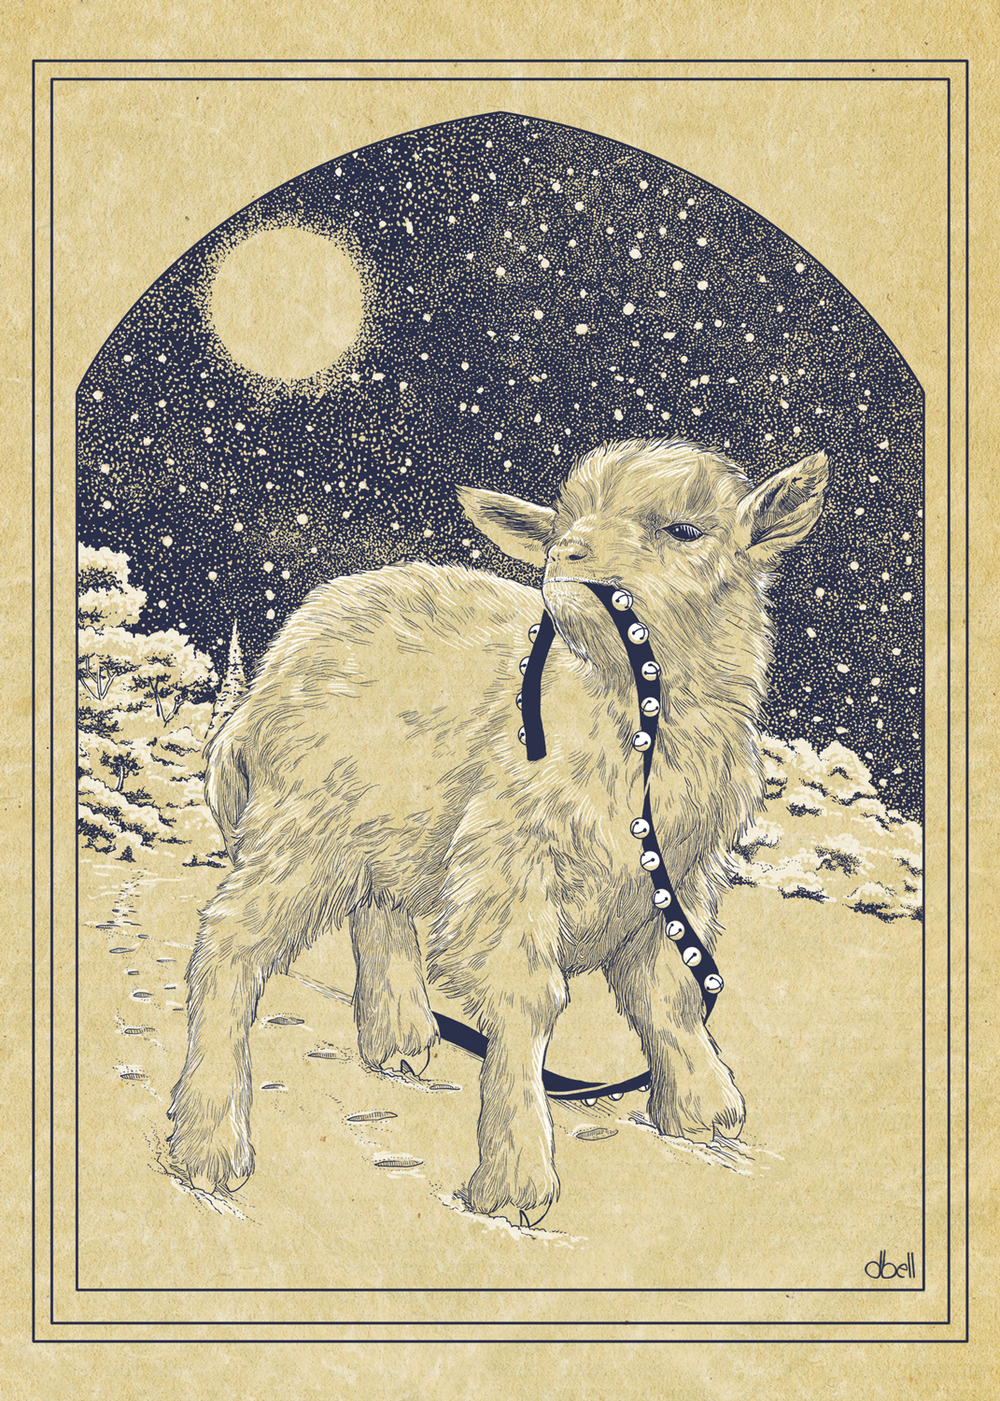 Niblit, the Christmas Goat